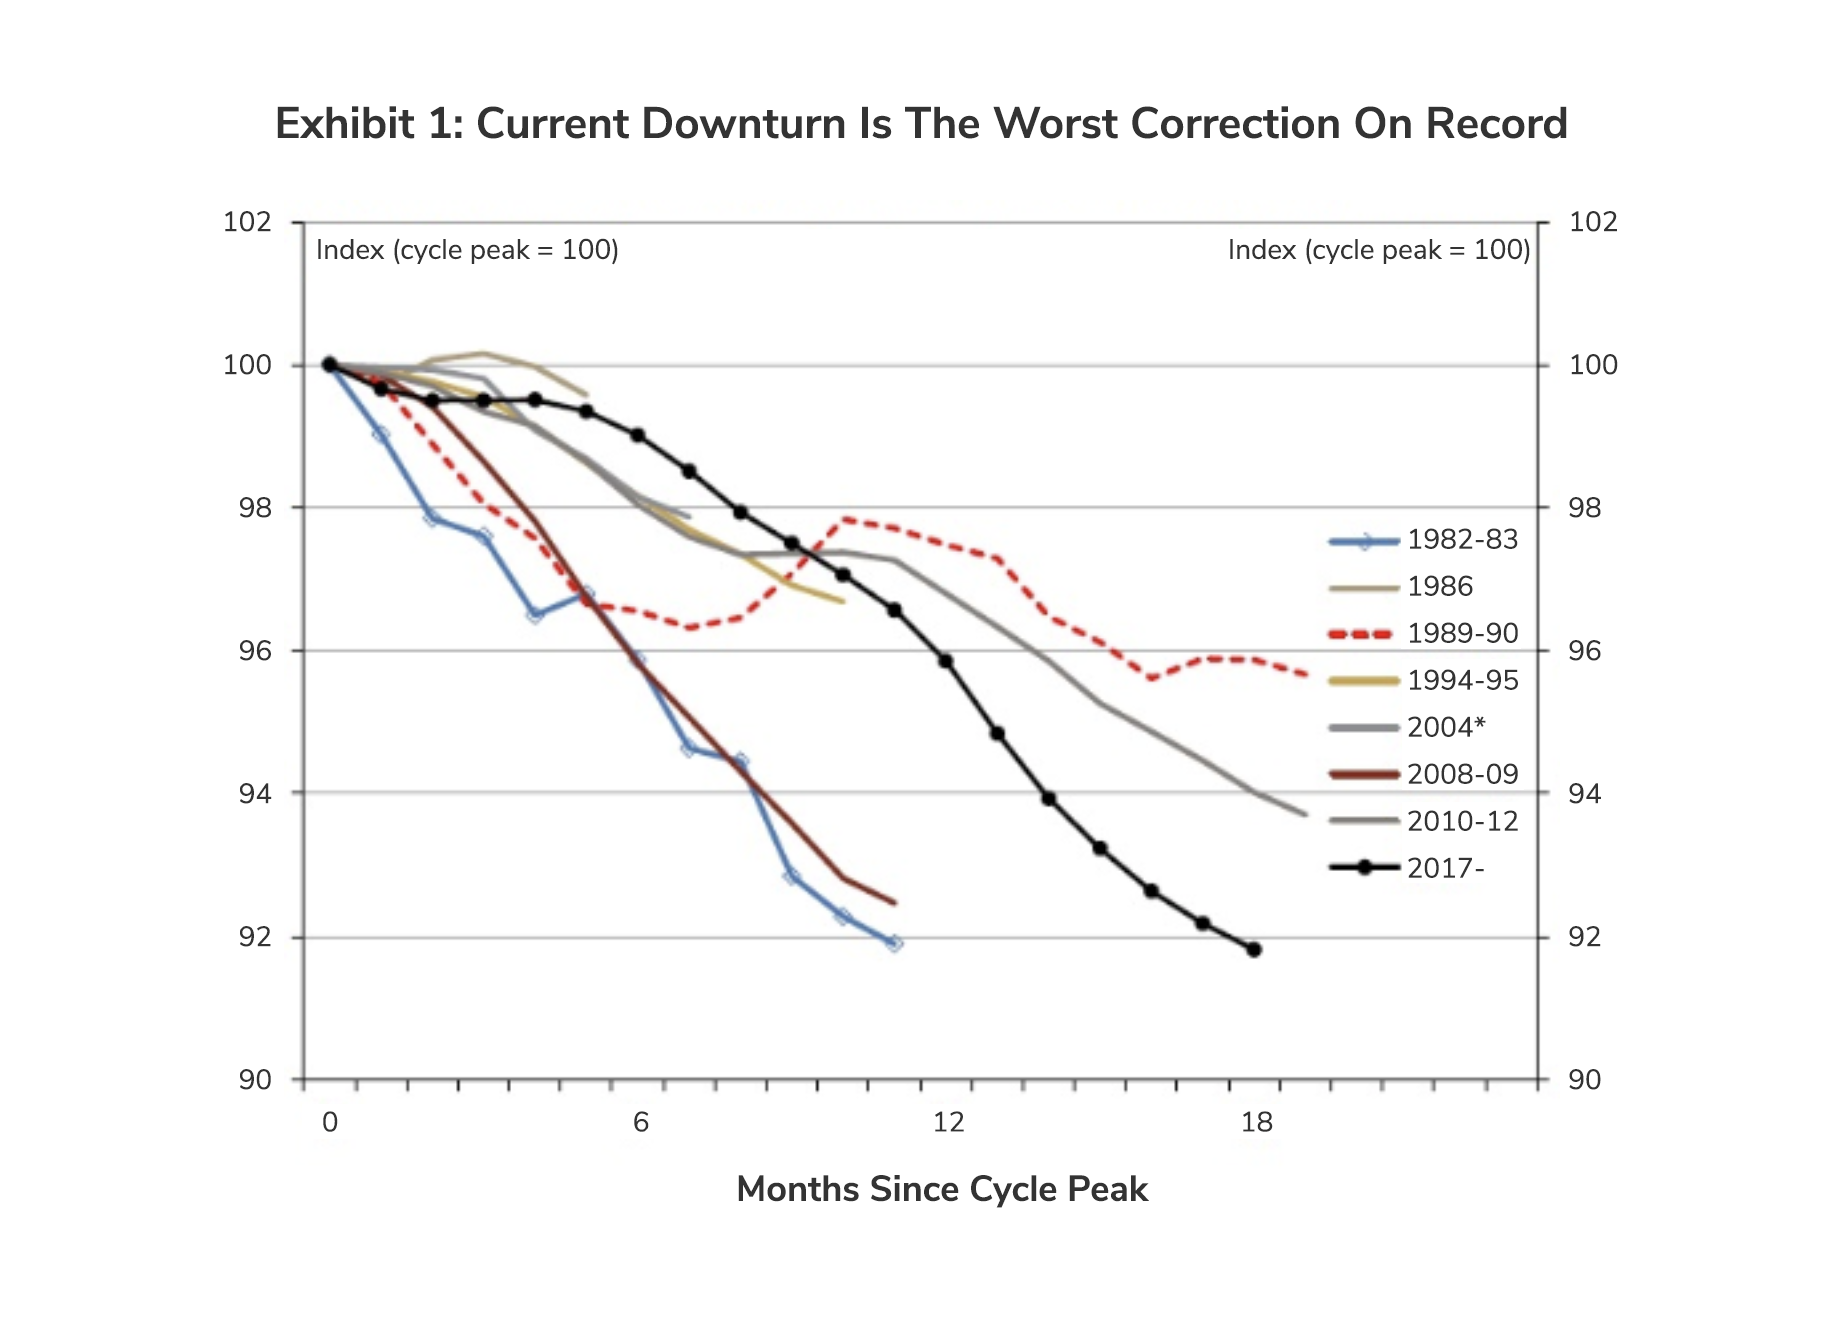 Current Downturn is the Worst Correction on Record